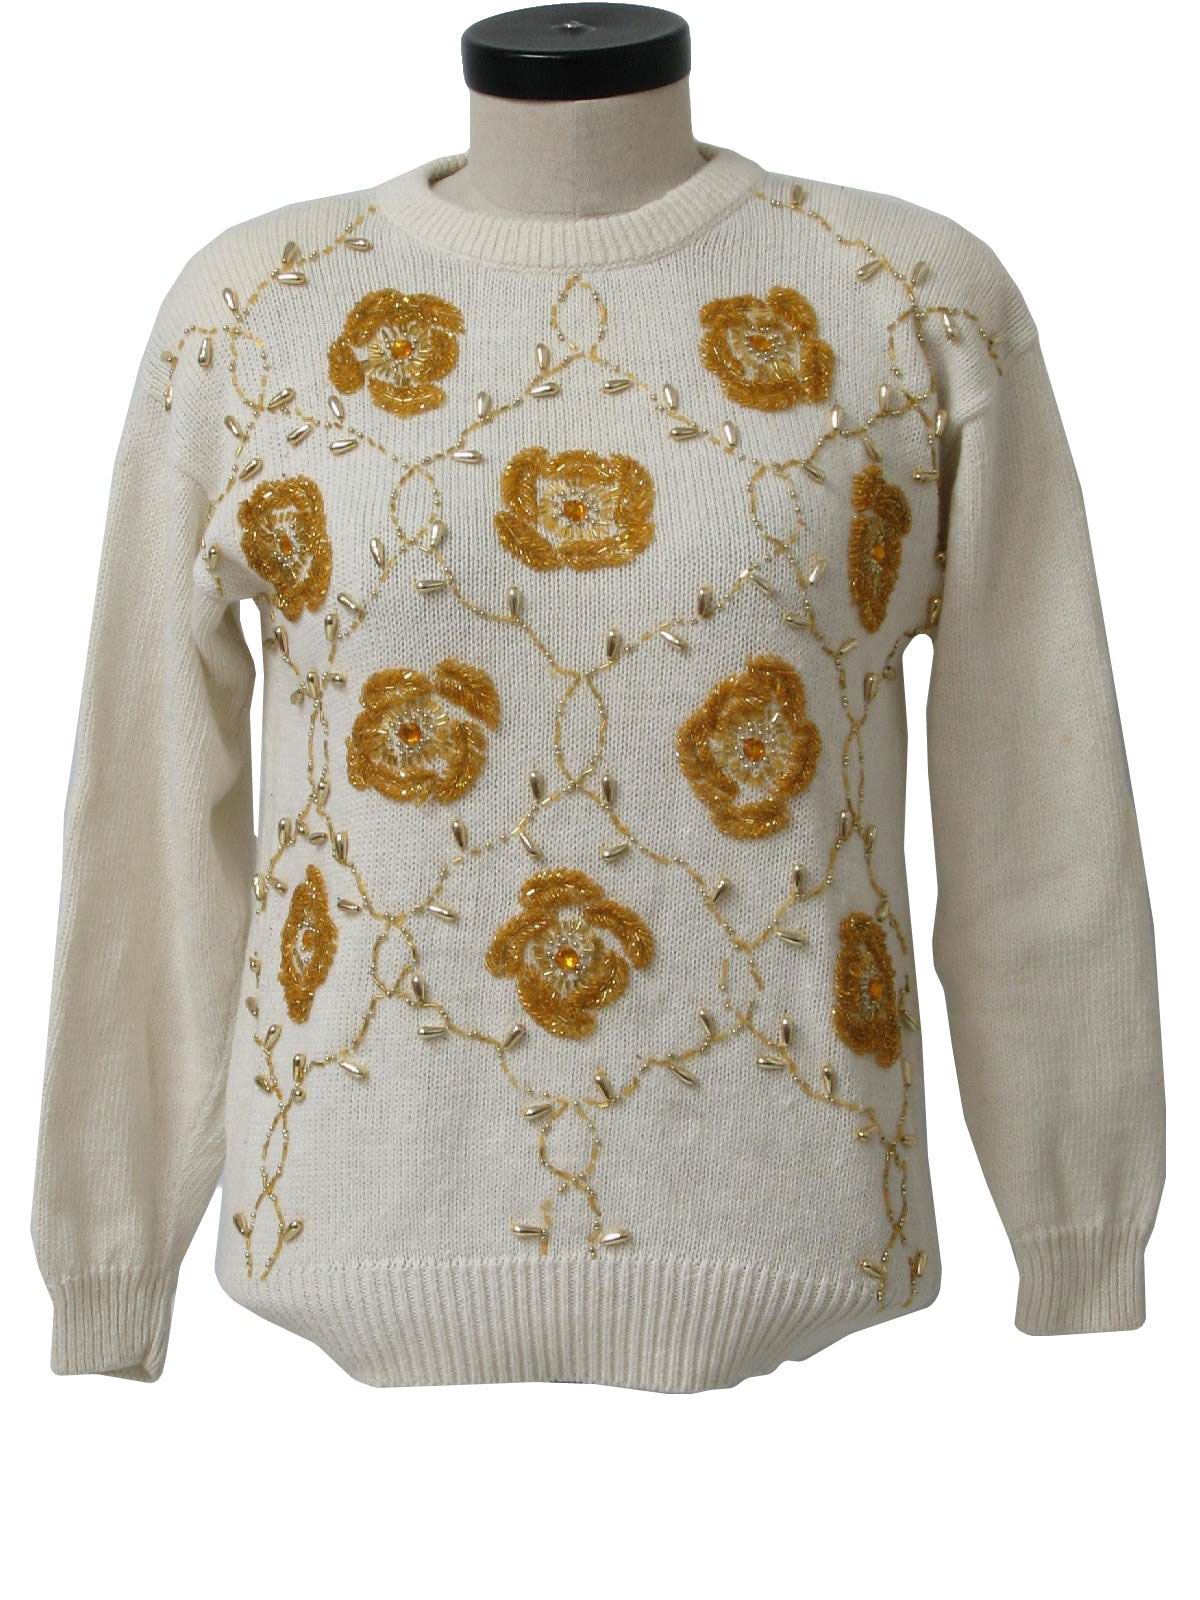 ... sweater with gold beaded floral print all over the front, plain cream